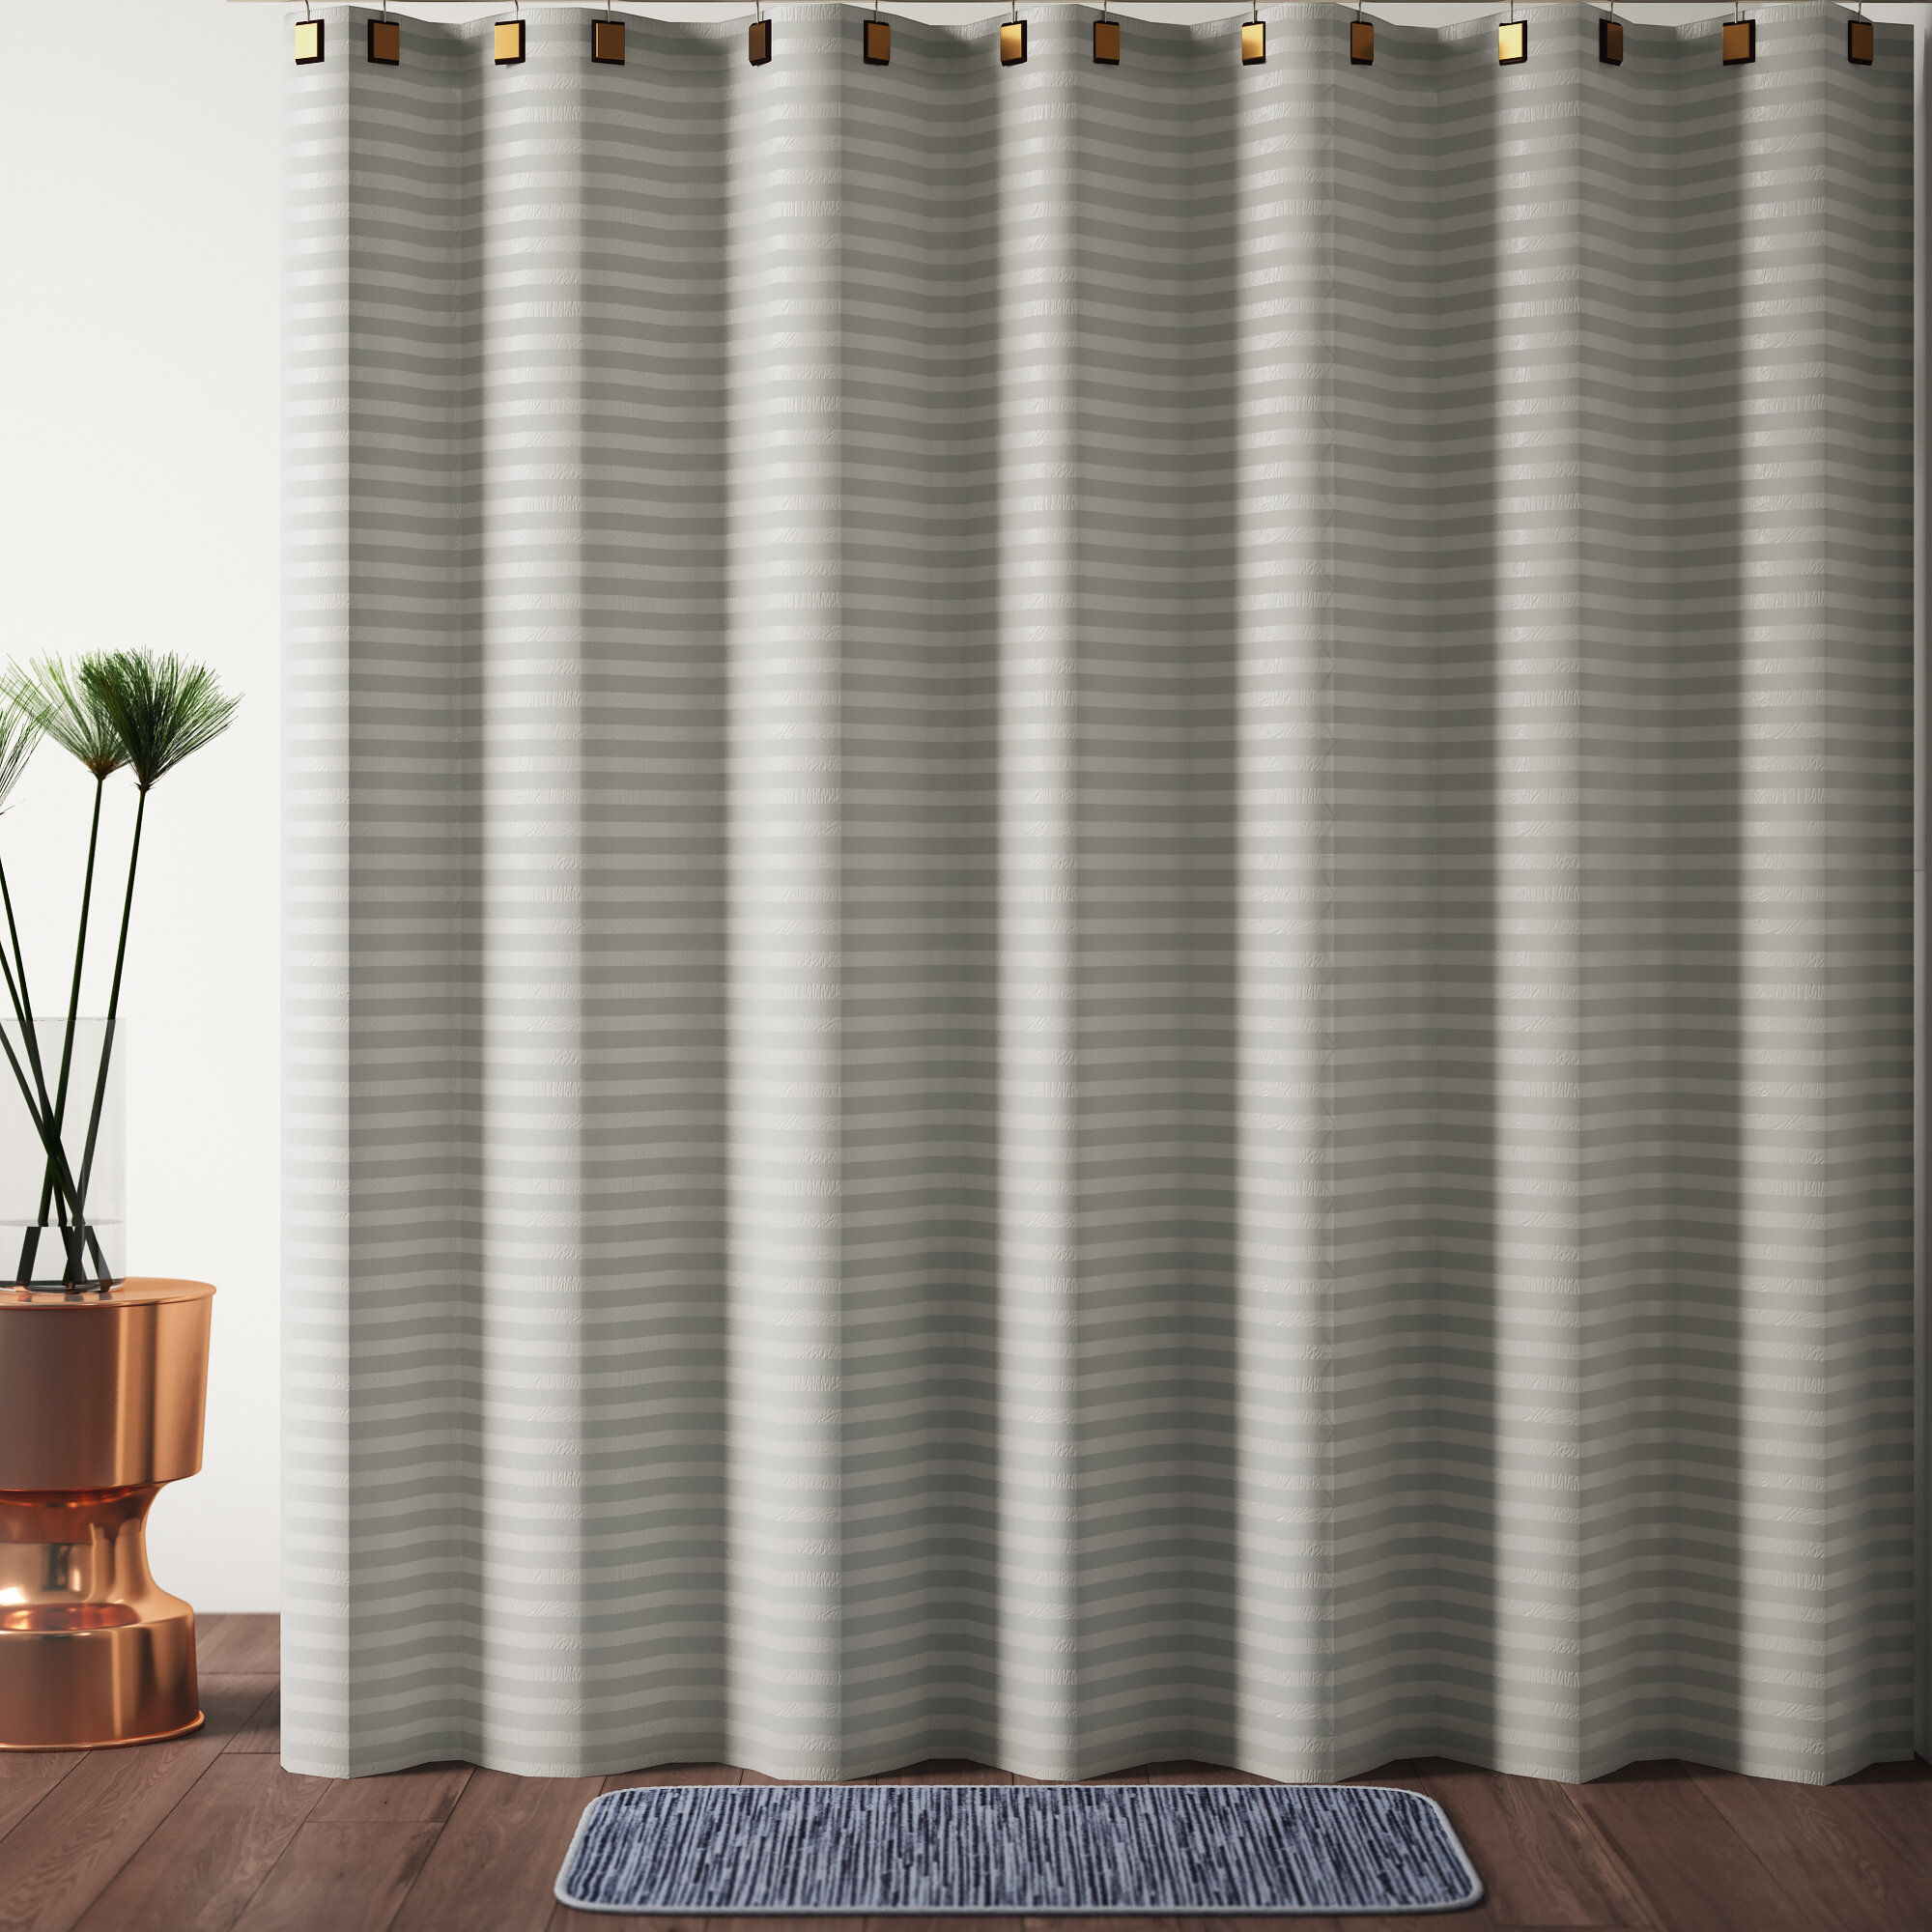 Highpoint Textured Stripes 100 Cotton Single Shower Curtain